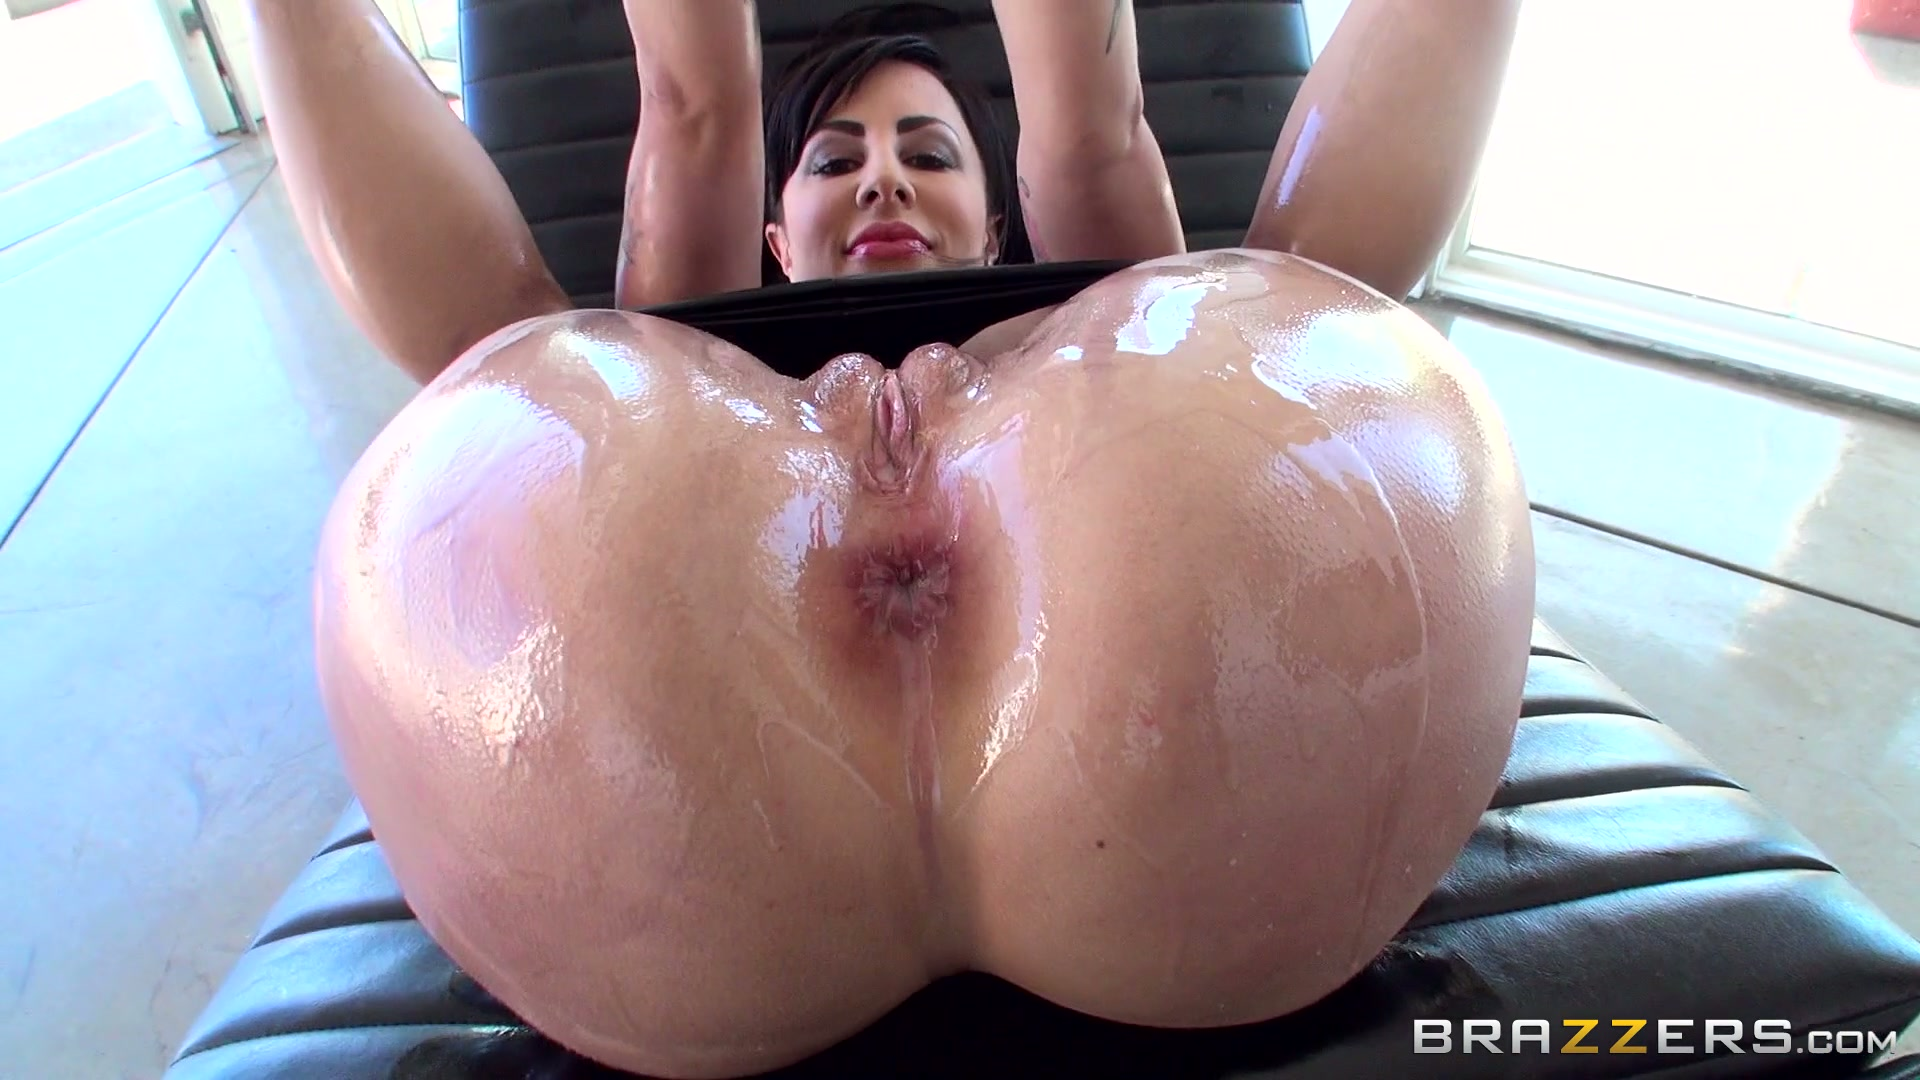 One Free big ass video clips must say